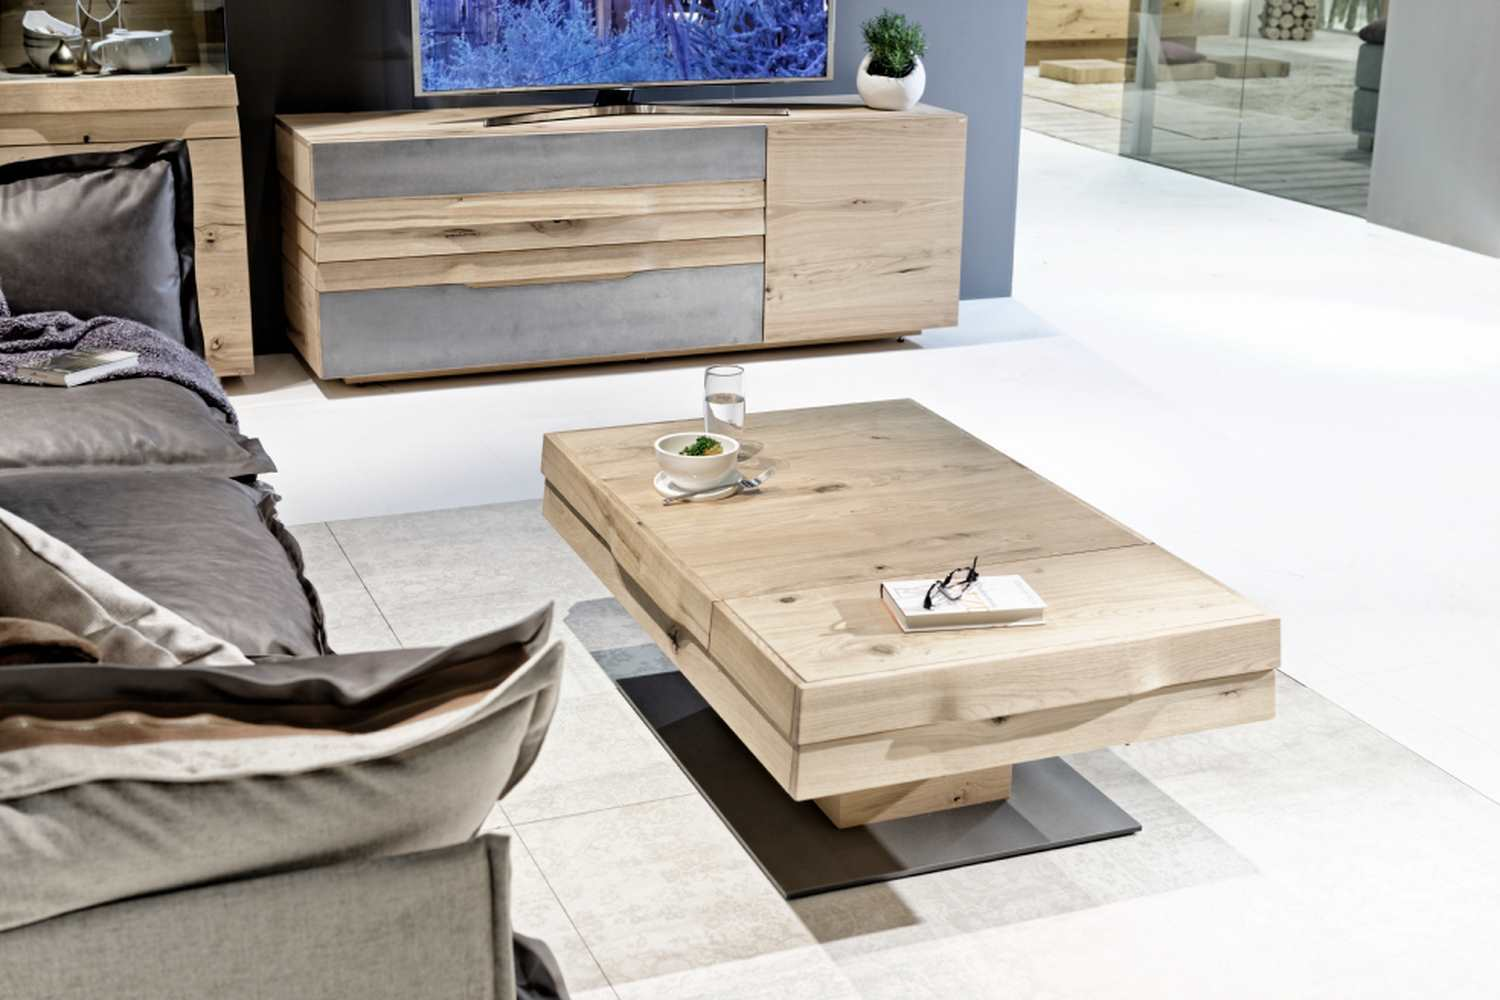 Table de salon design en bois convertible organo au design allemand - Table de chevet contemporaine design ...